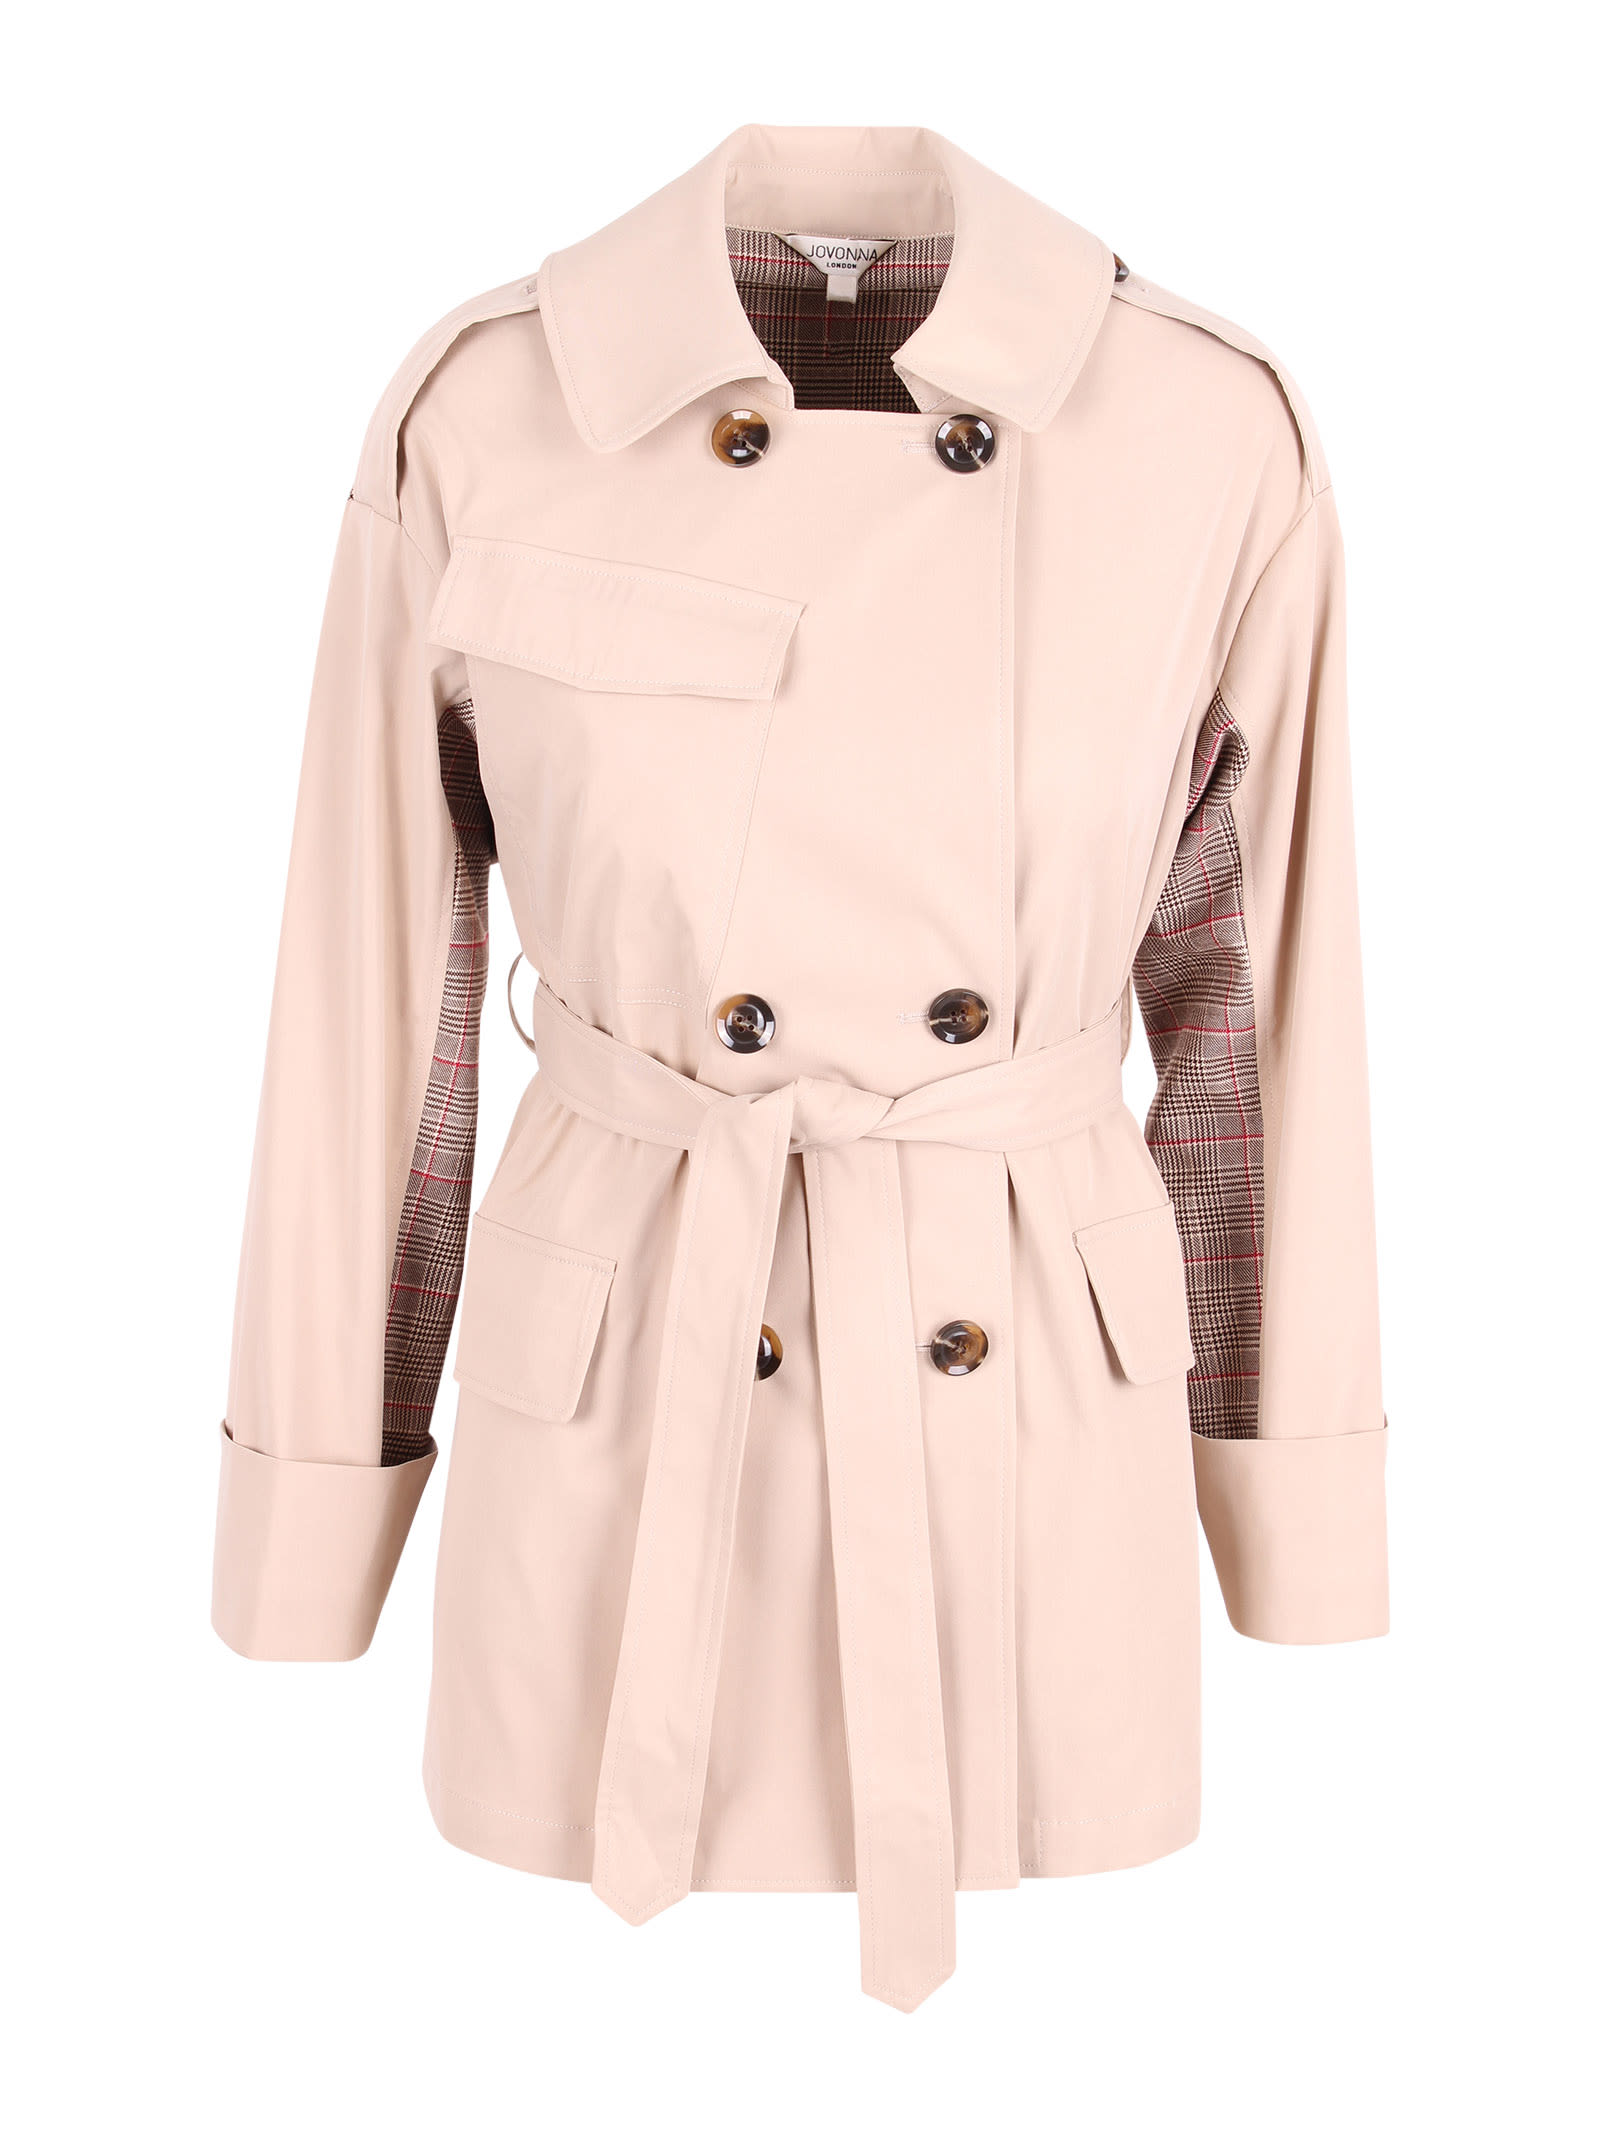 London giza Polyester Trench Coat